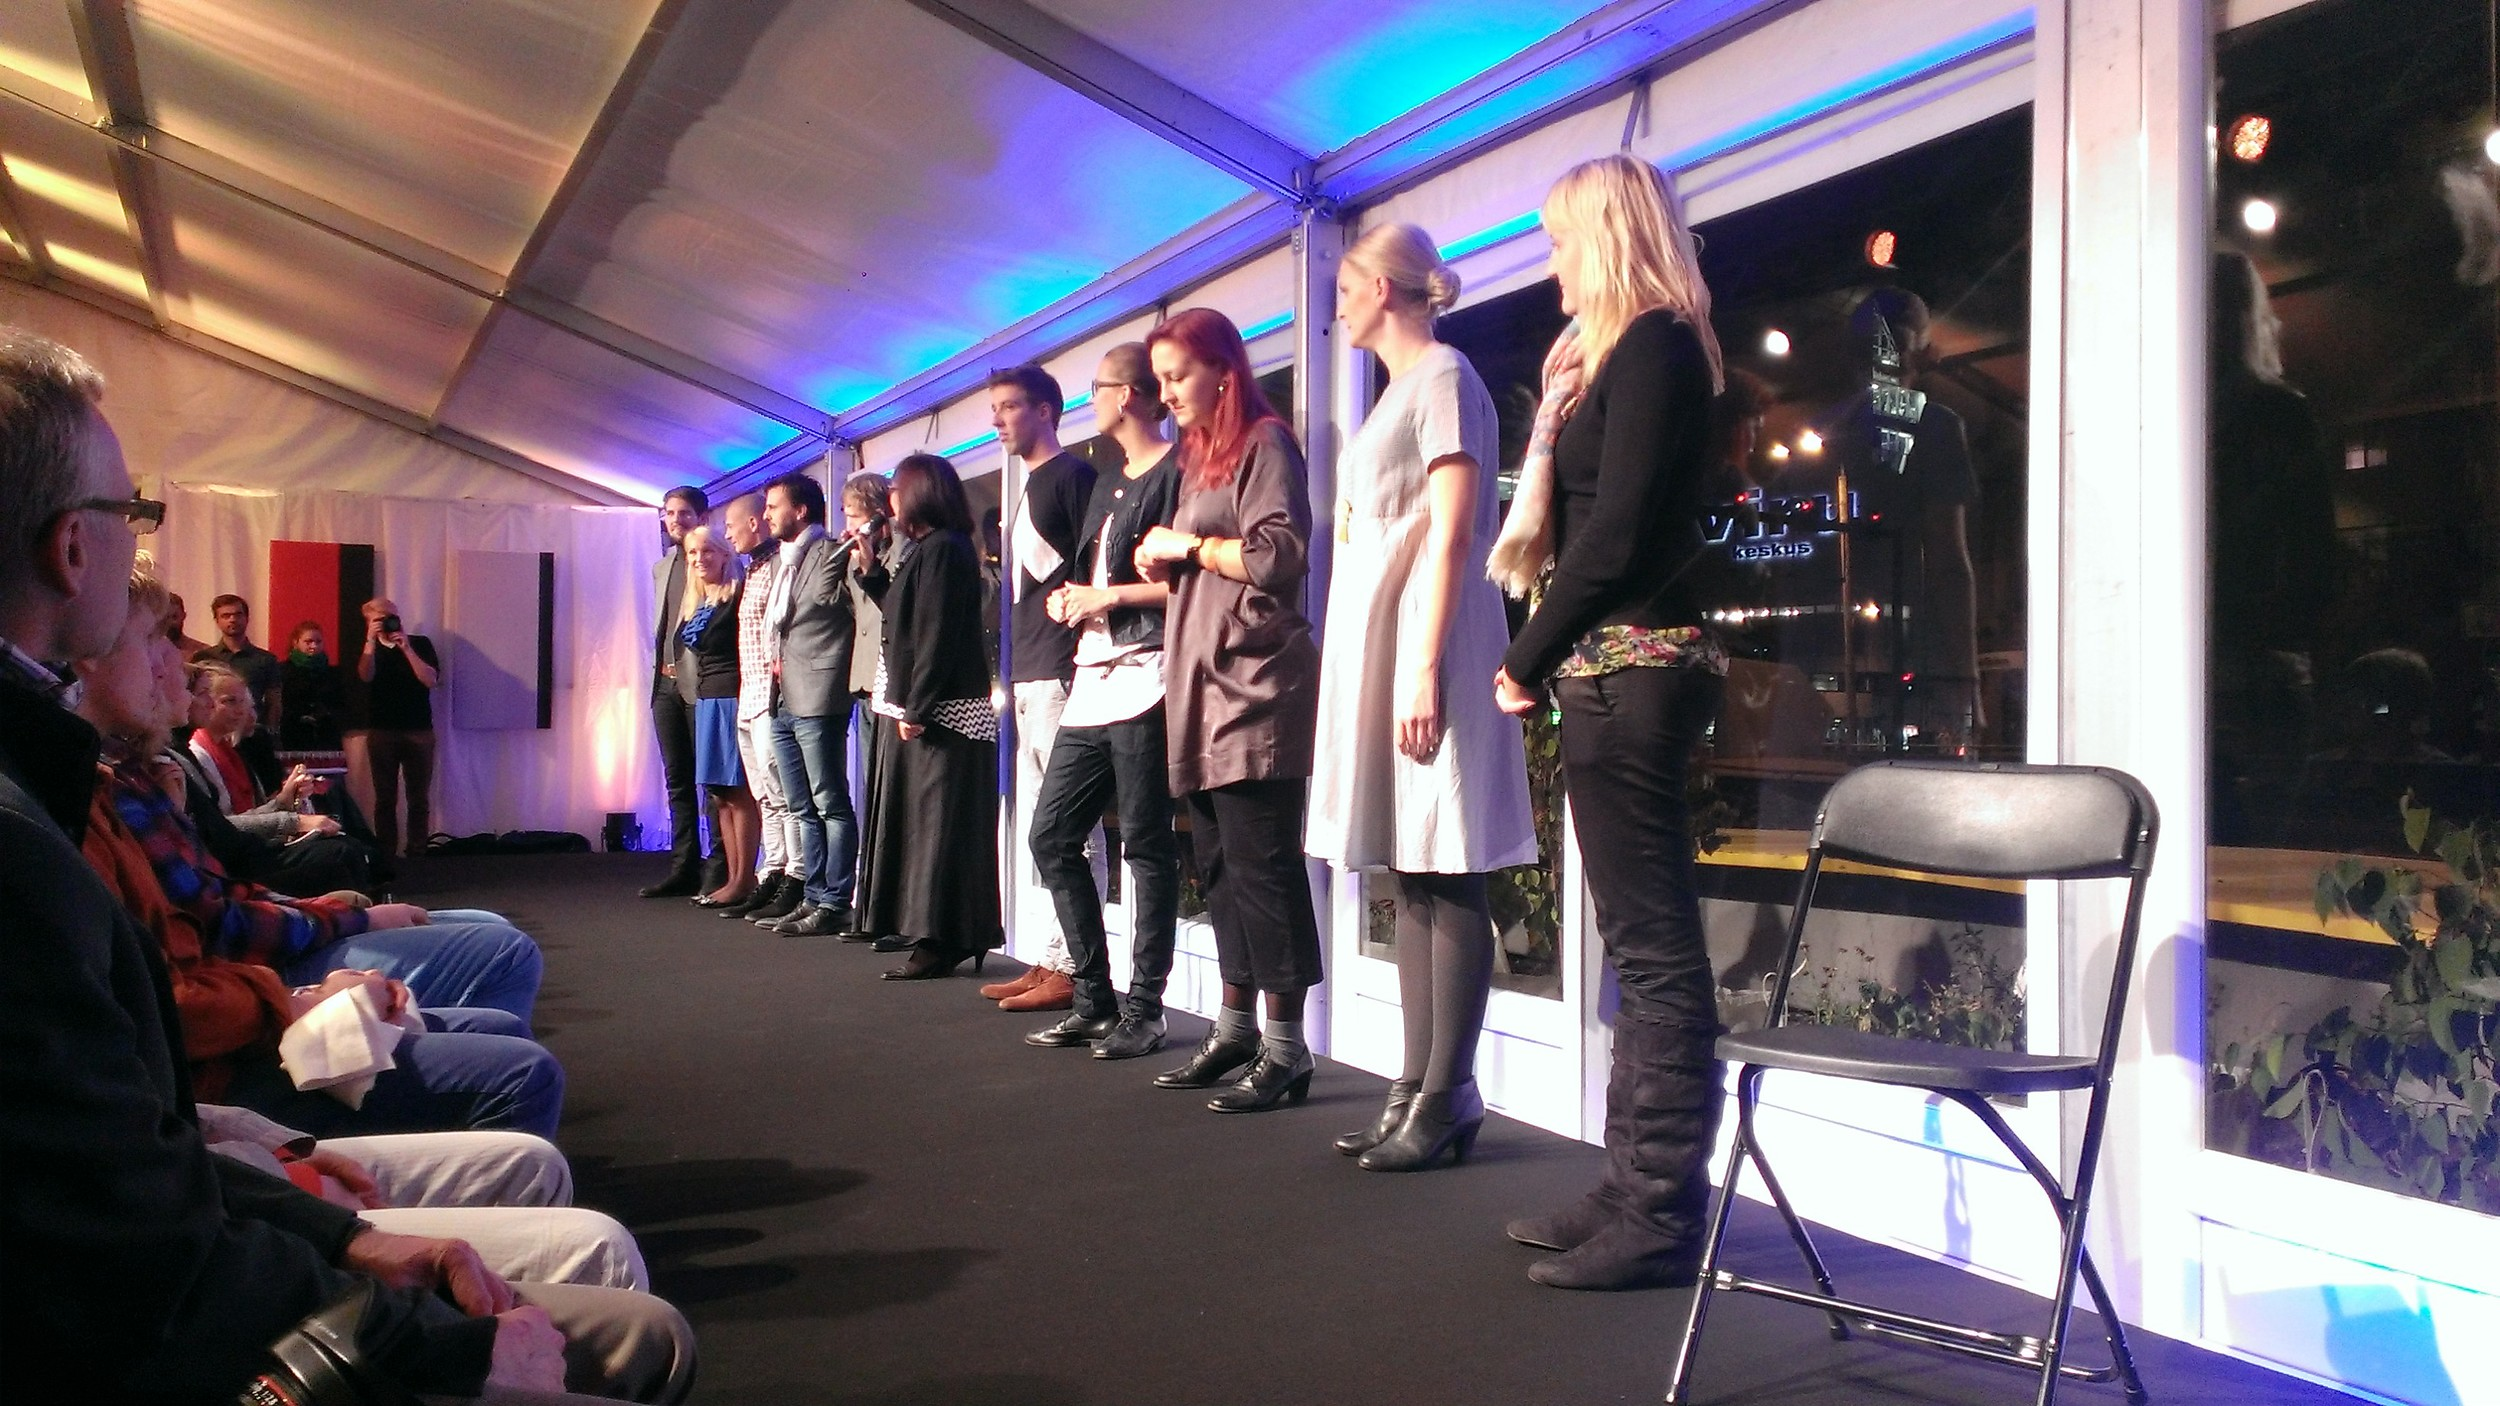 The entrants in the annual design competition, which preceded the fashion show